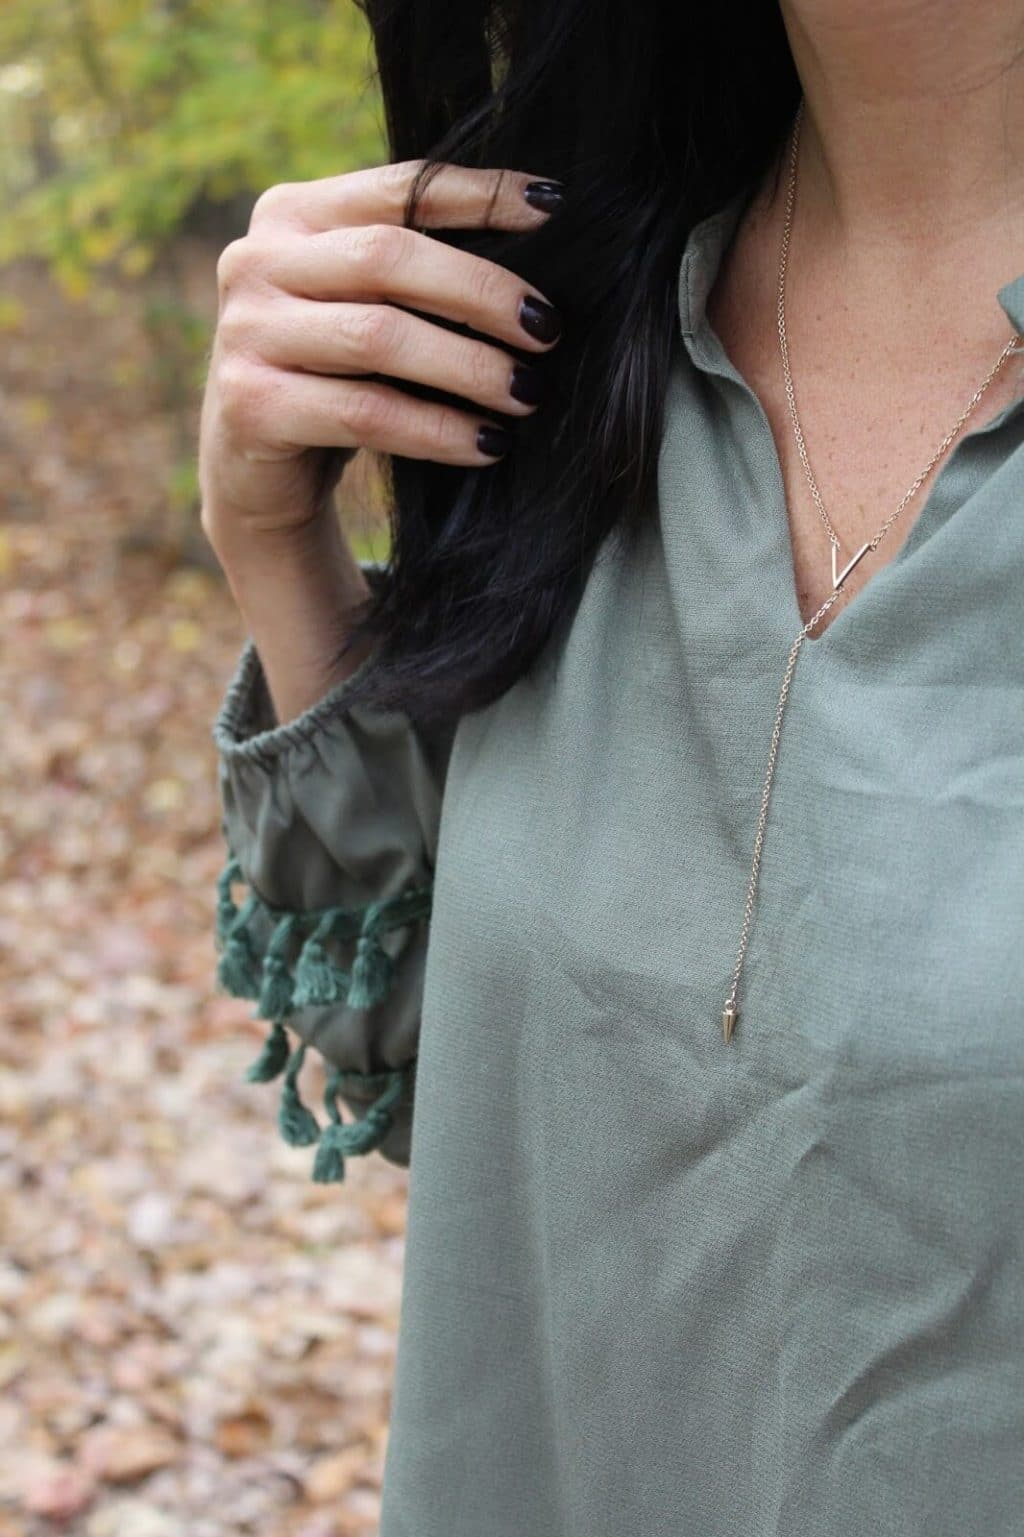 Tassel Blouse, lariat necklace Nordstrom